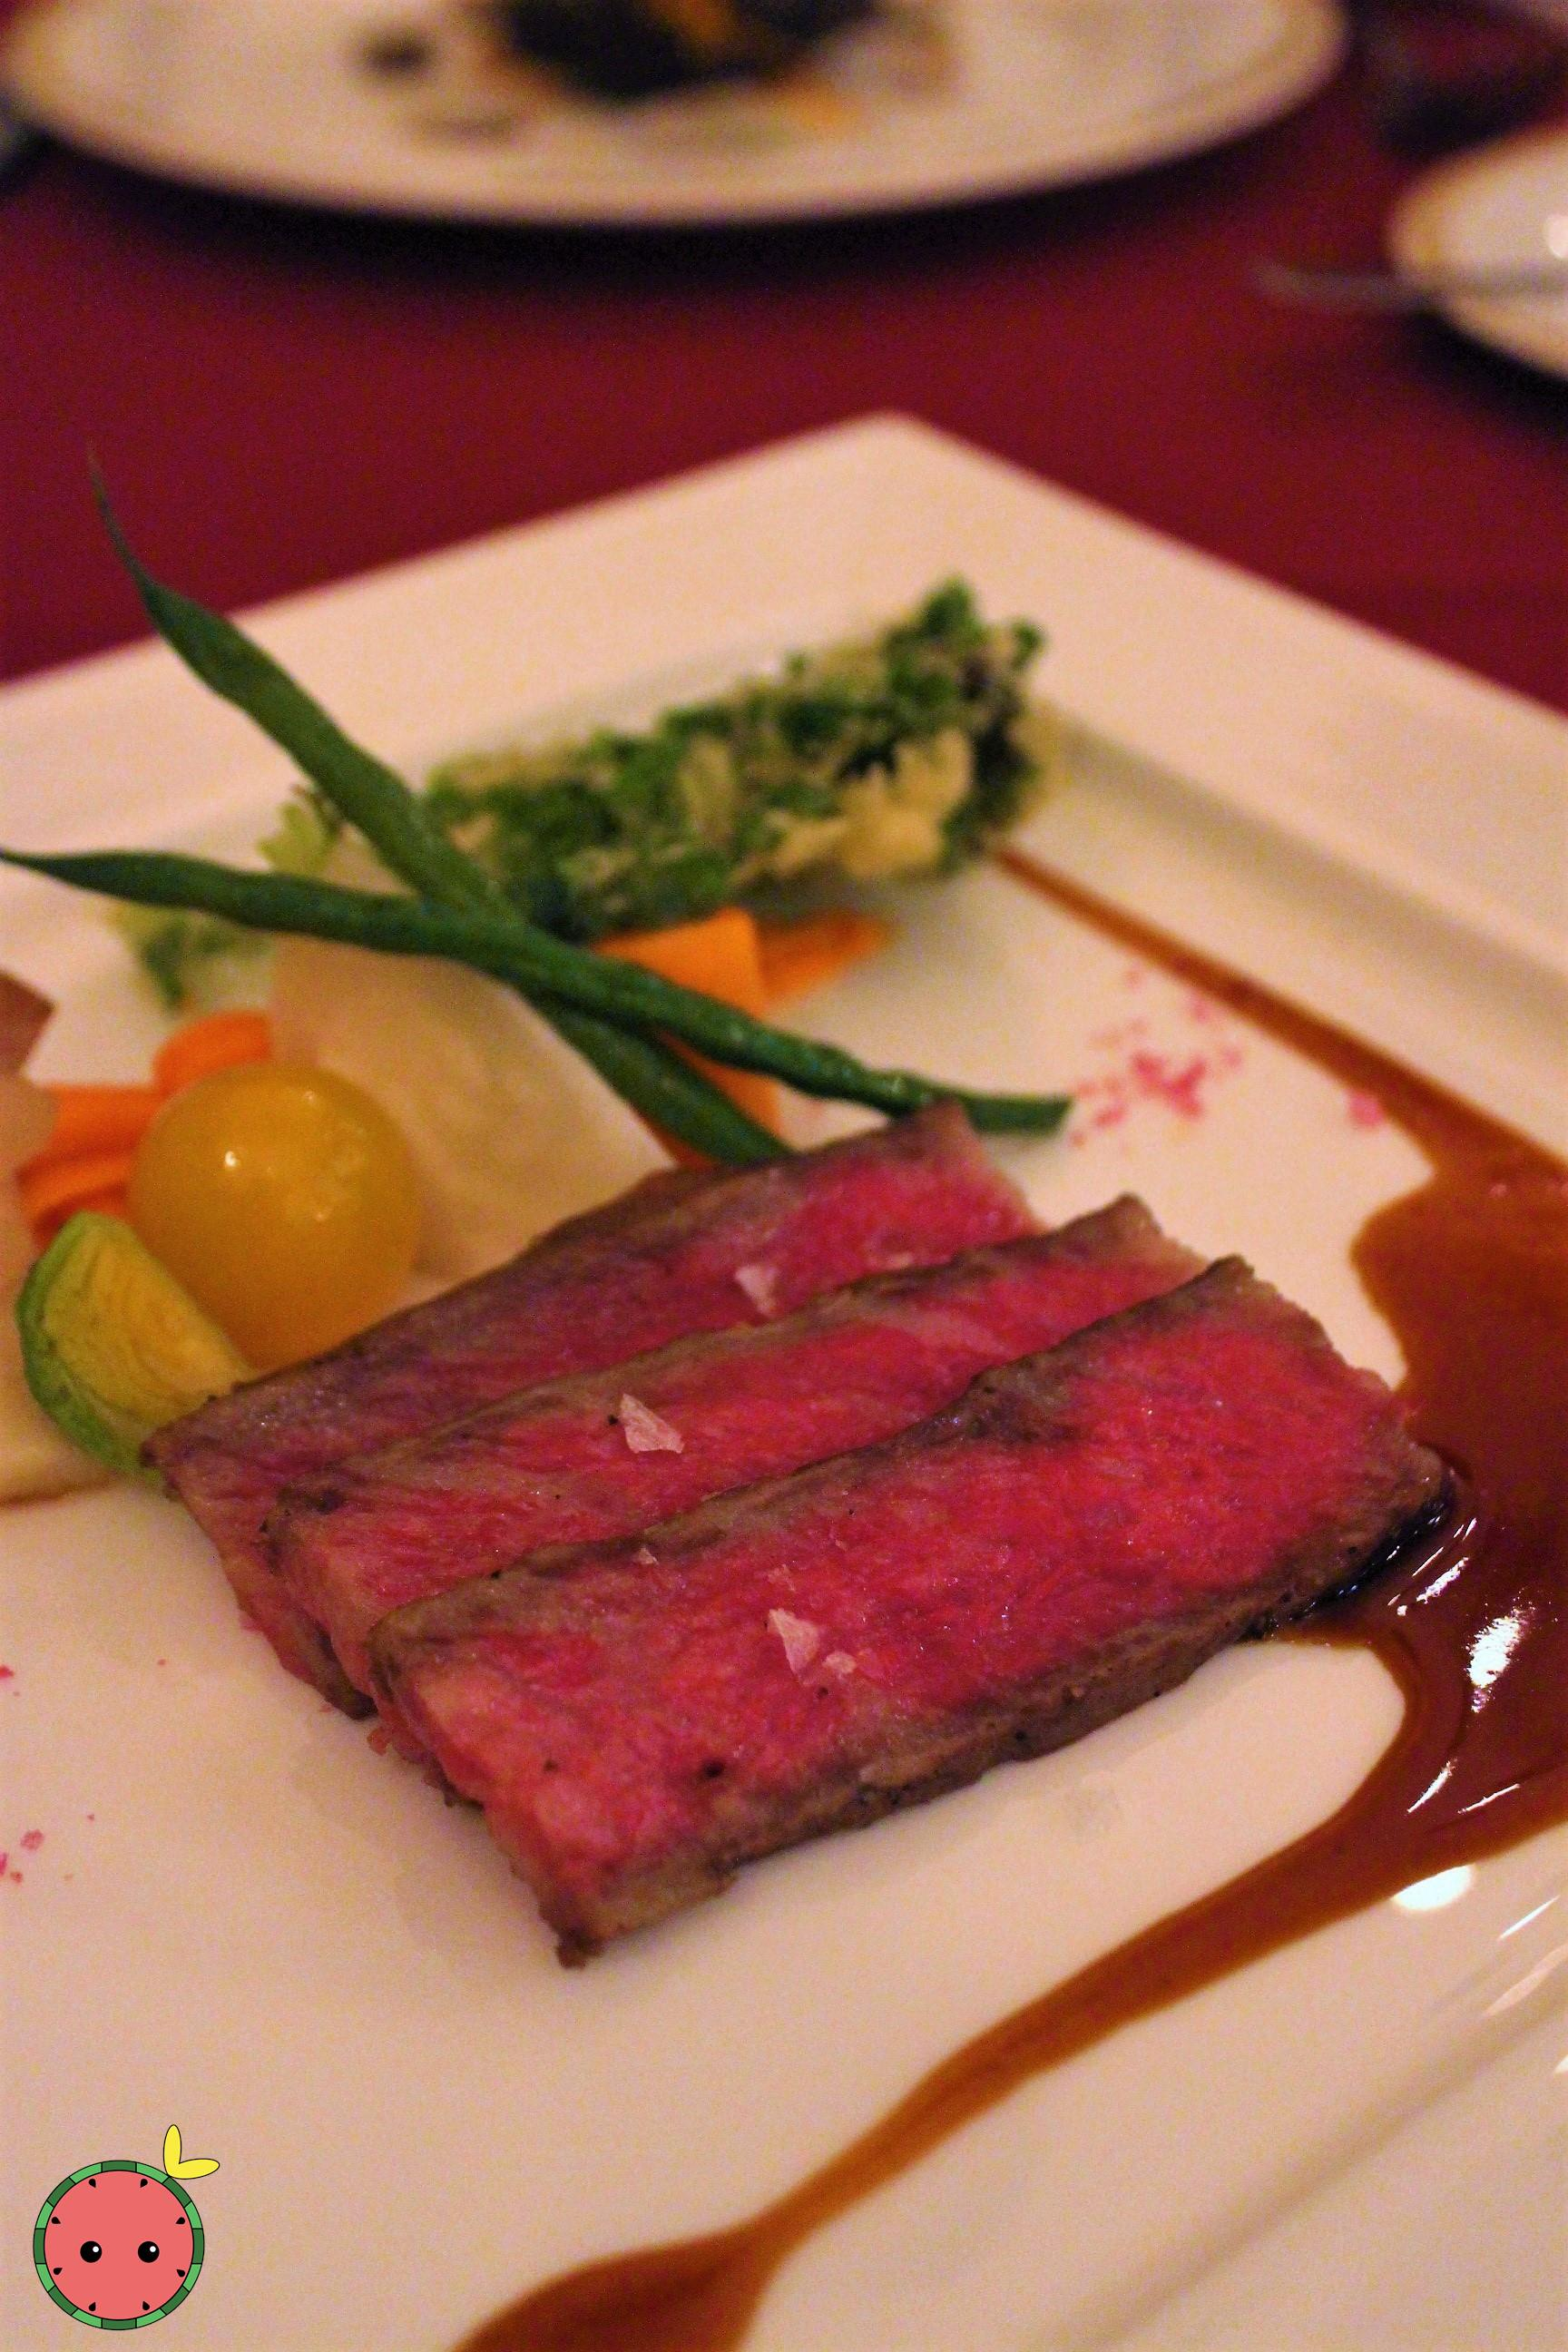 Roasted Kuroge Wagyu Beef topped with Madilla Sauce and Pink Crystal Salt